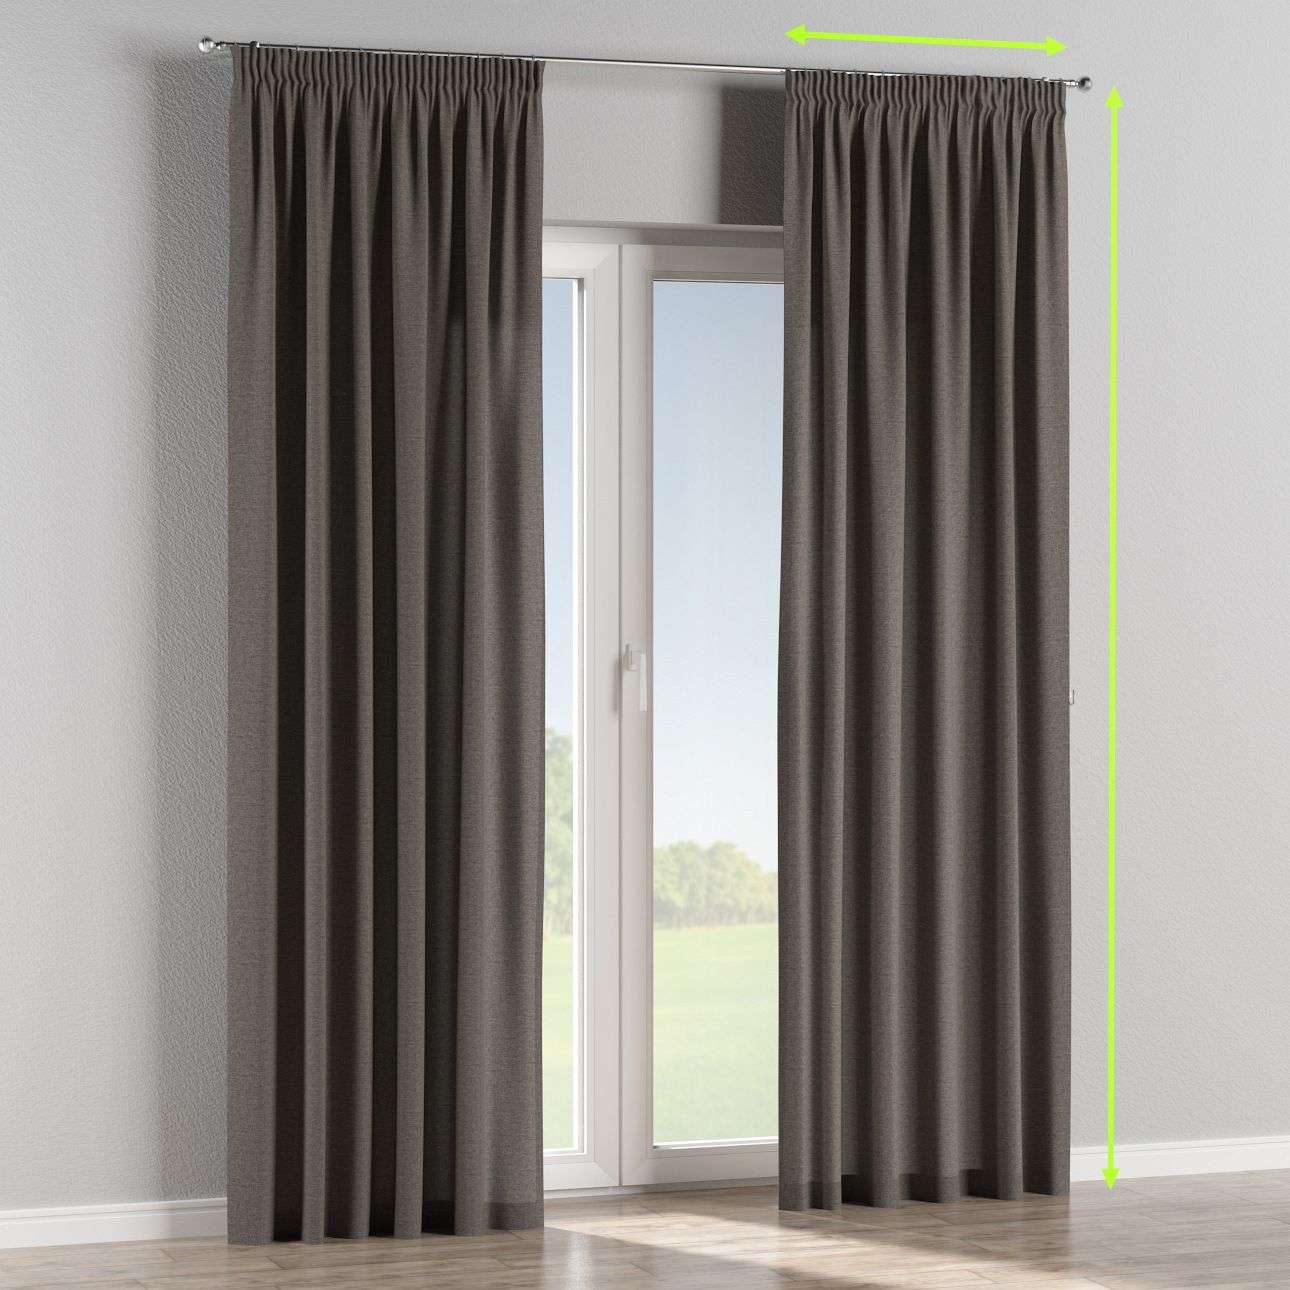 Pencil pleat lined curtains in collection Edinburgh , fabric: 115-77